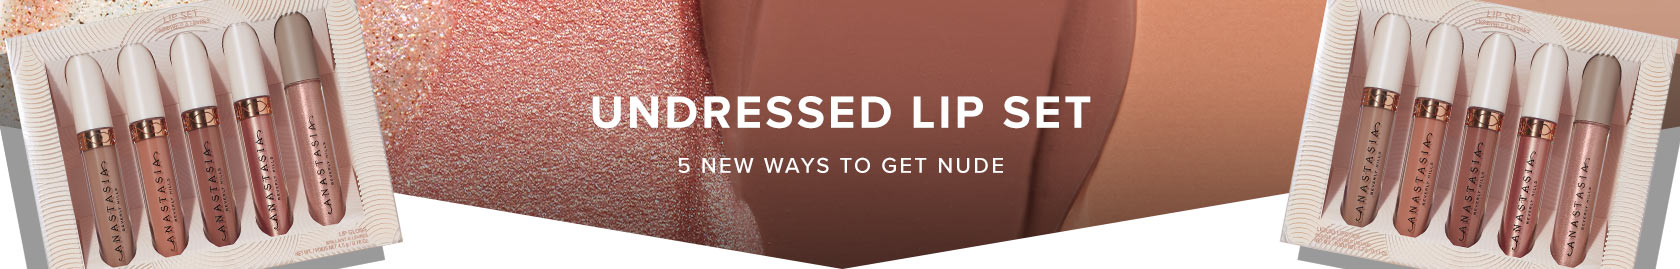 Undressed Lip Kit - 5 New Ways to Get Nude